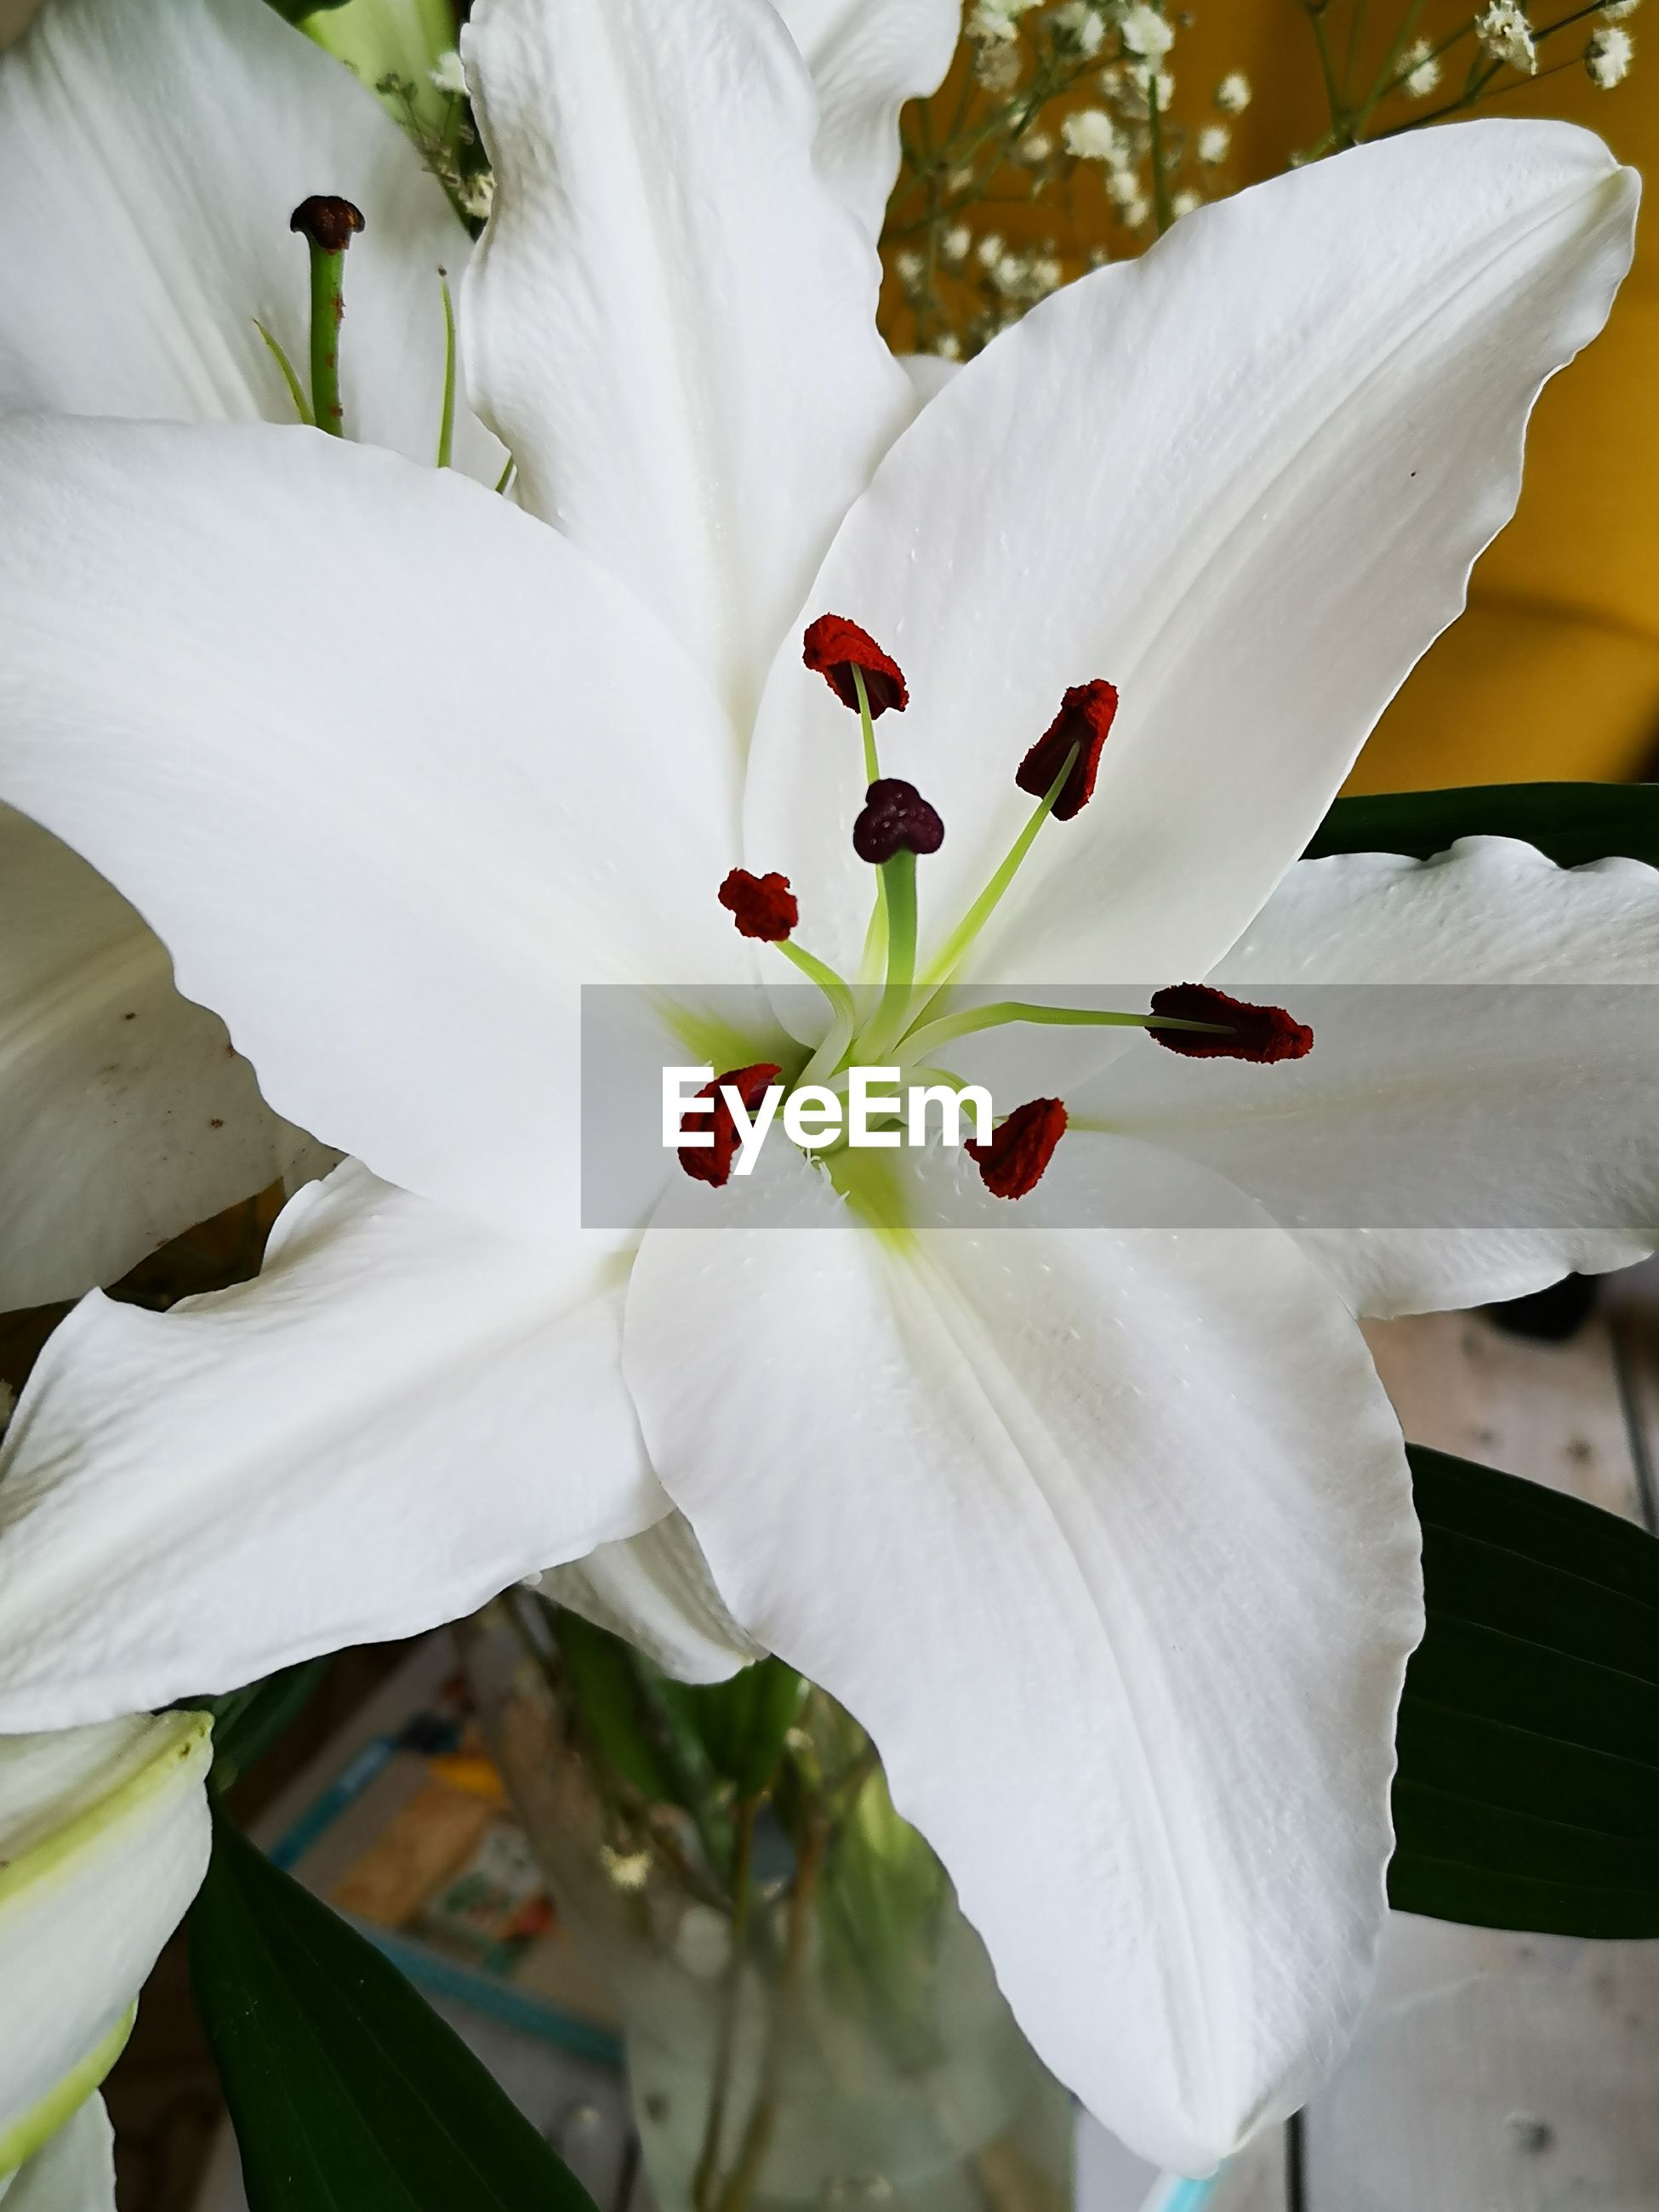 CLOSE-UP OF WHITE LILY FLOWER